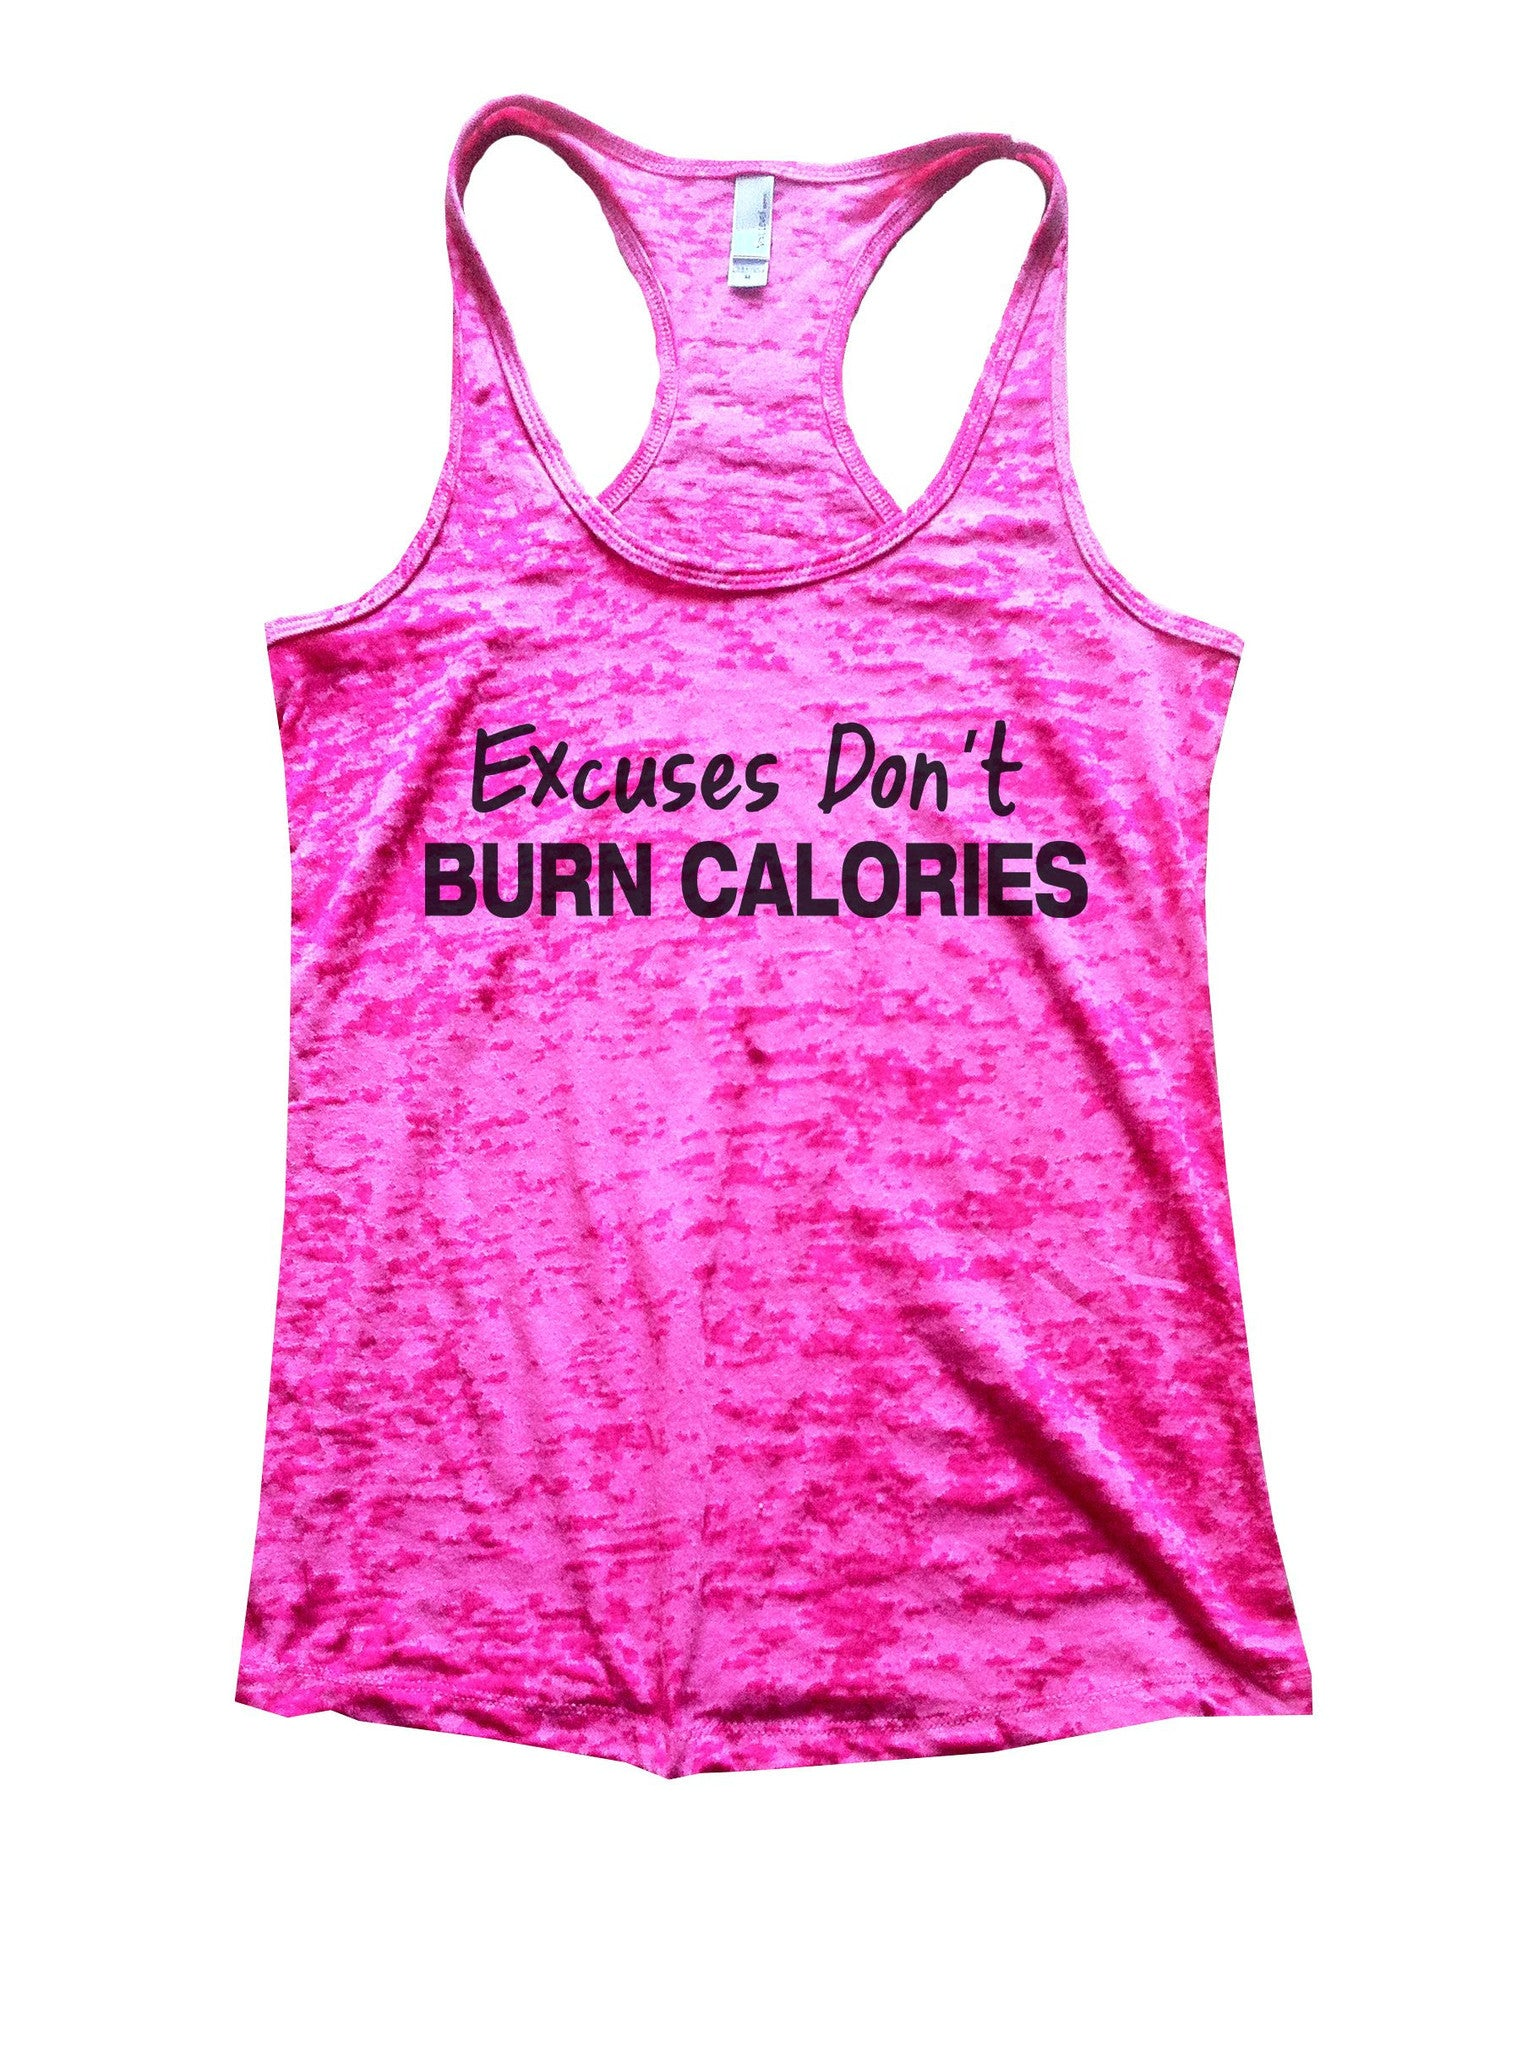 Excuses Don't Burn Calories Burnout Tank Top By BurnoutTankTops.com - 843 - Funny Shirts Tank Tops Burnouts and Triblends  - 5